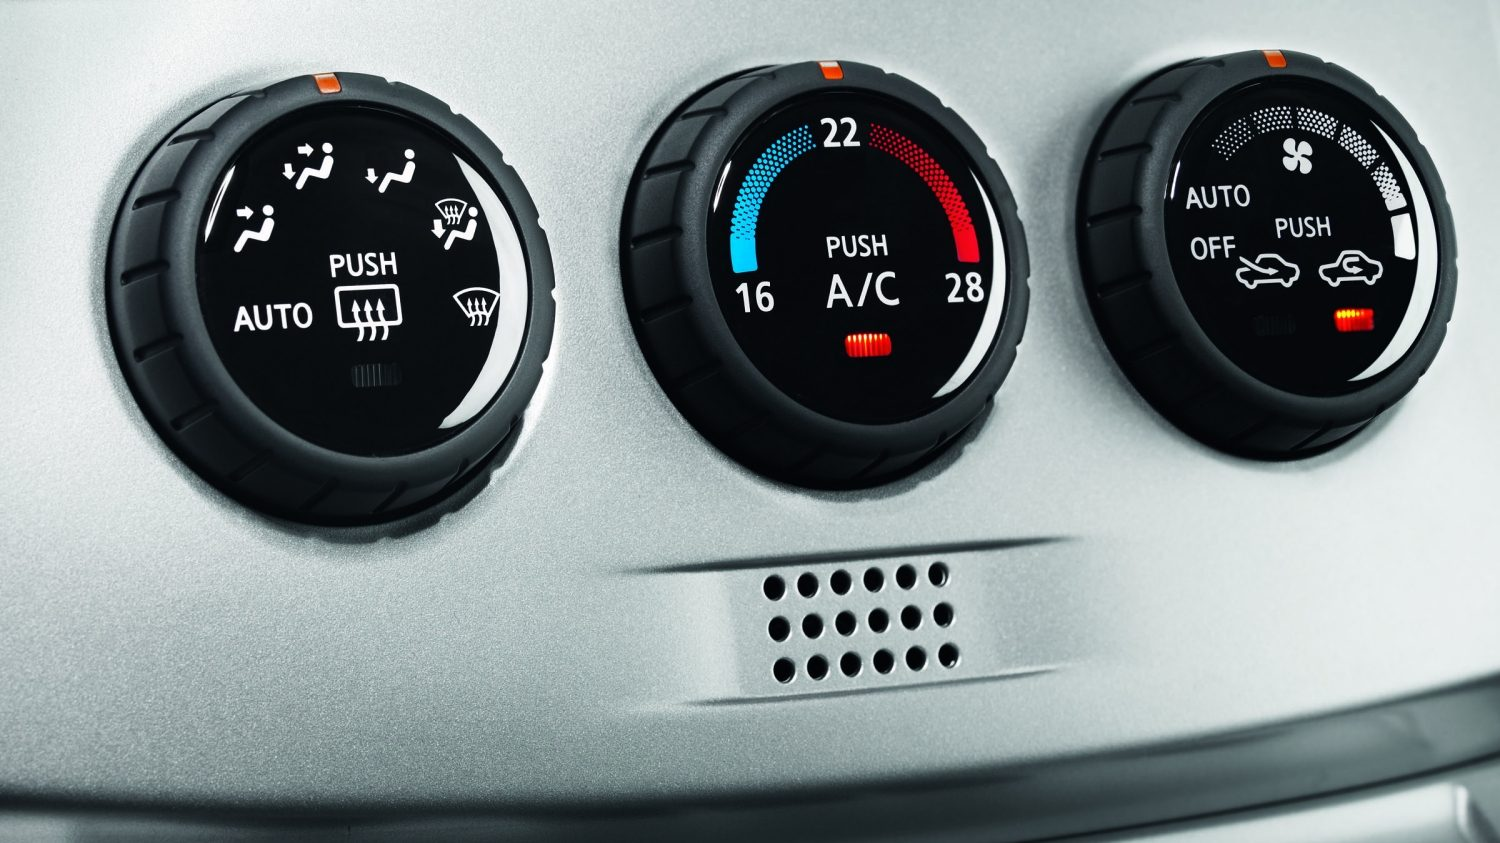 Van | Nissan NV200 | Air conditioning controls